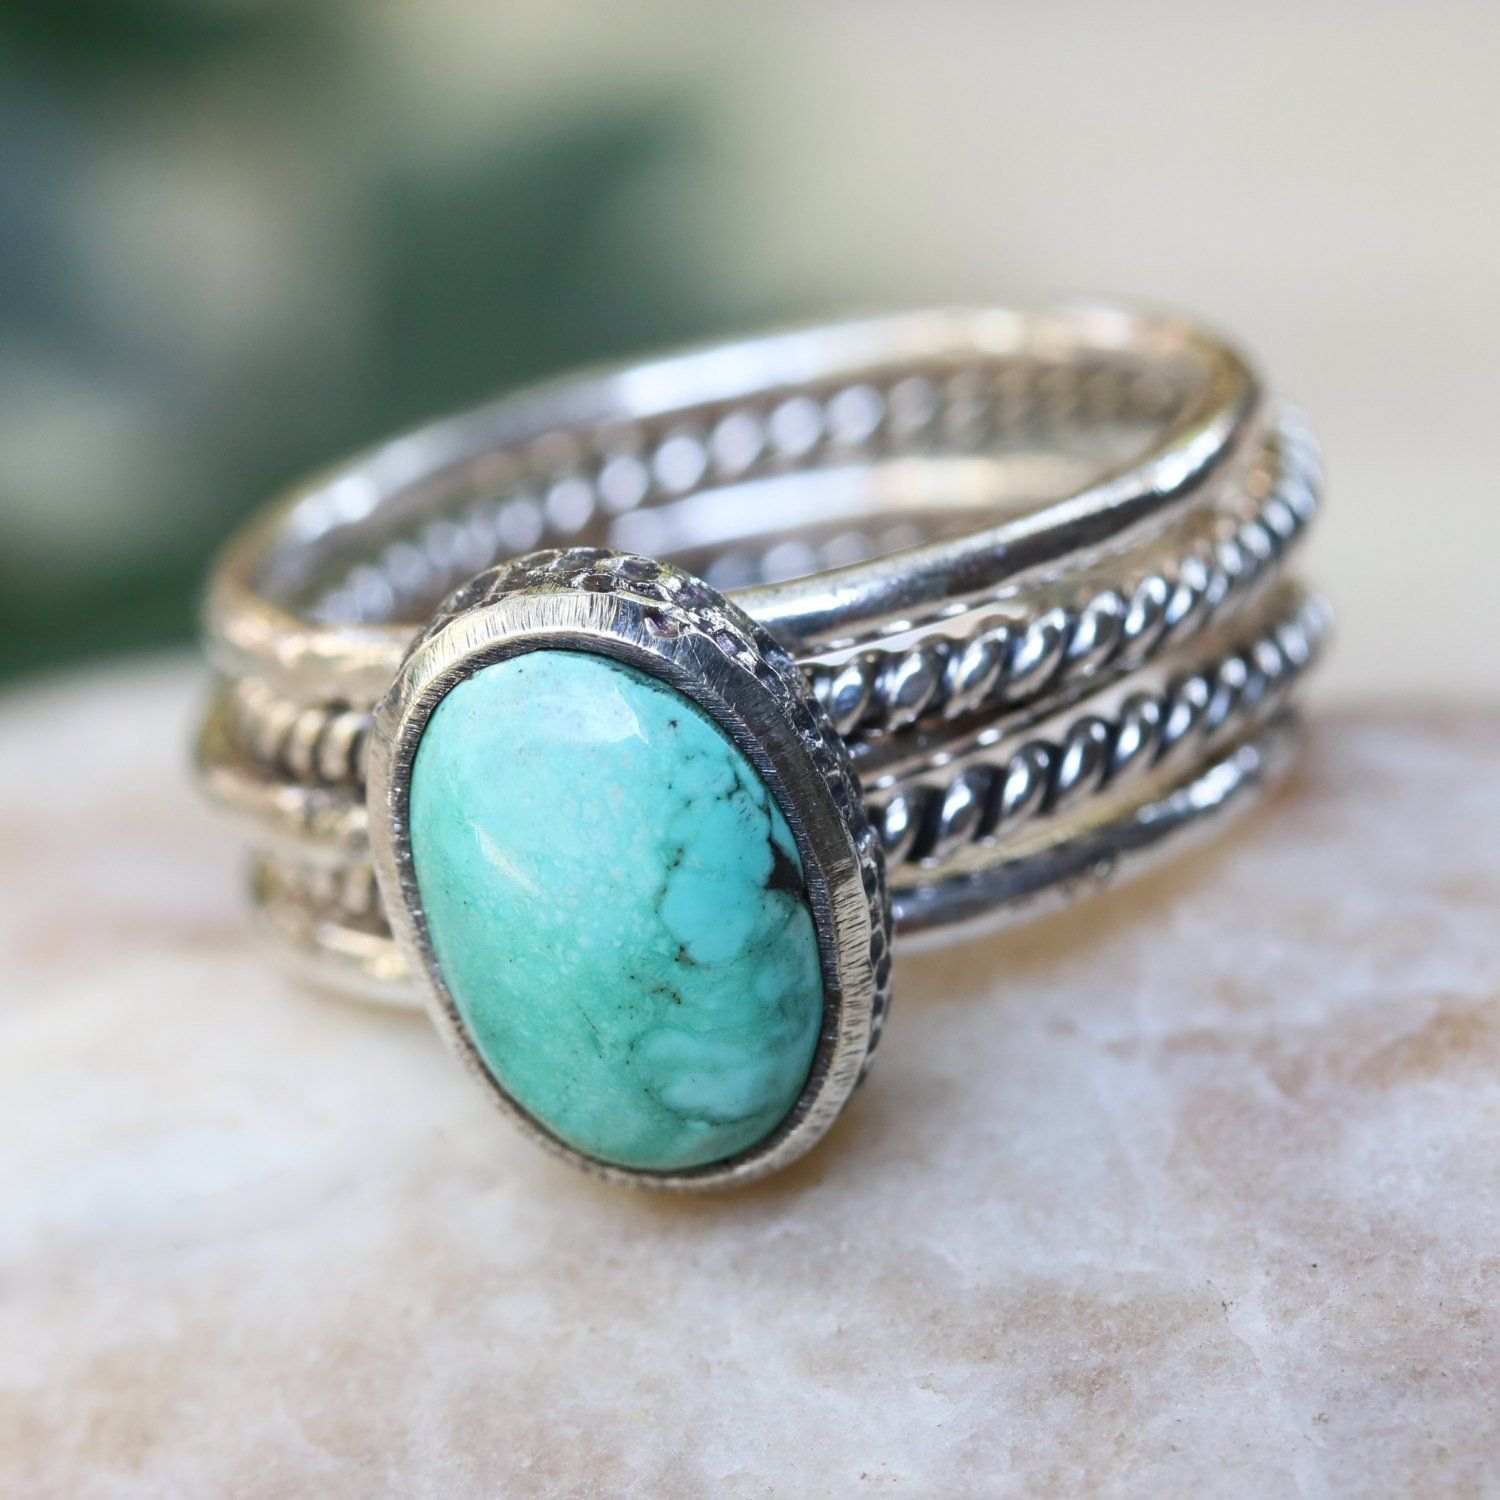 Hand Crafted 925 Sterling Silver SHABLOOL Ring Turquoise Turqouise Nature Style